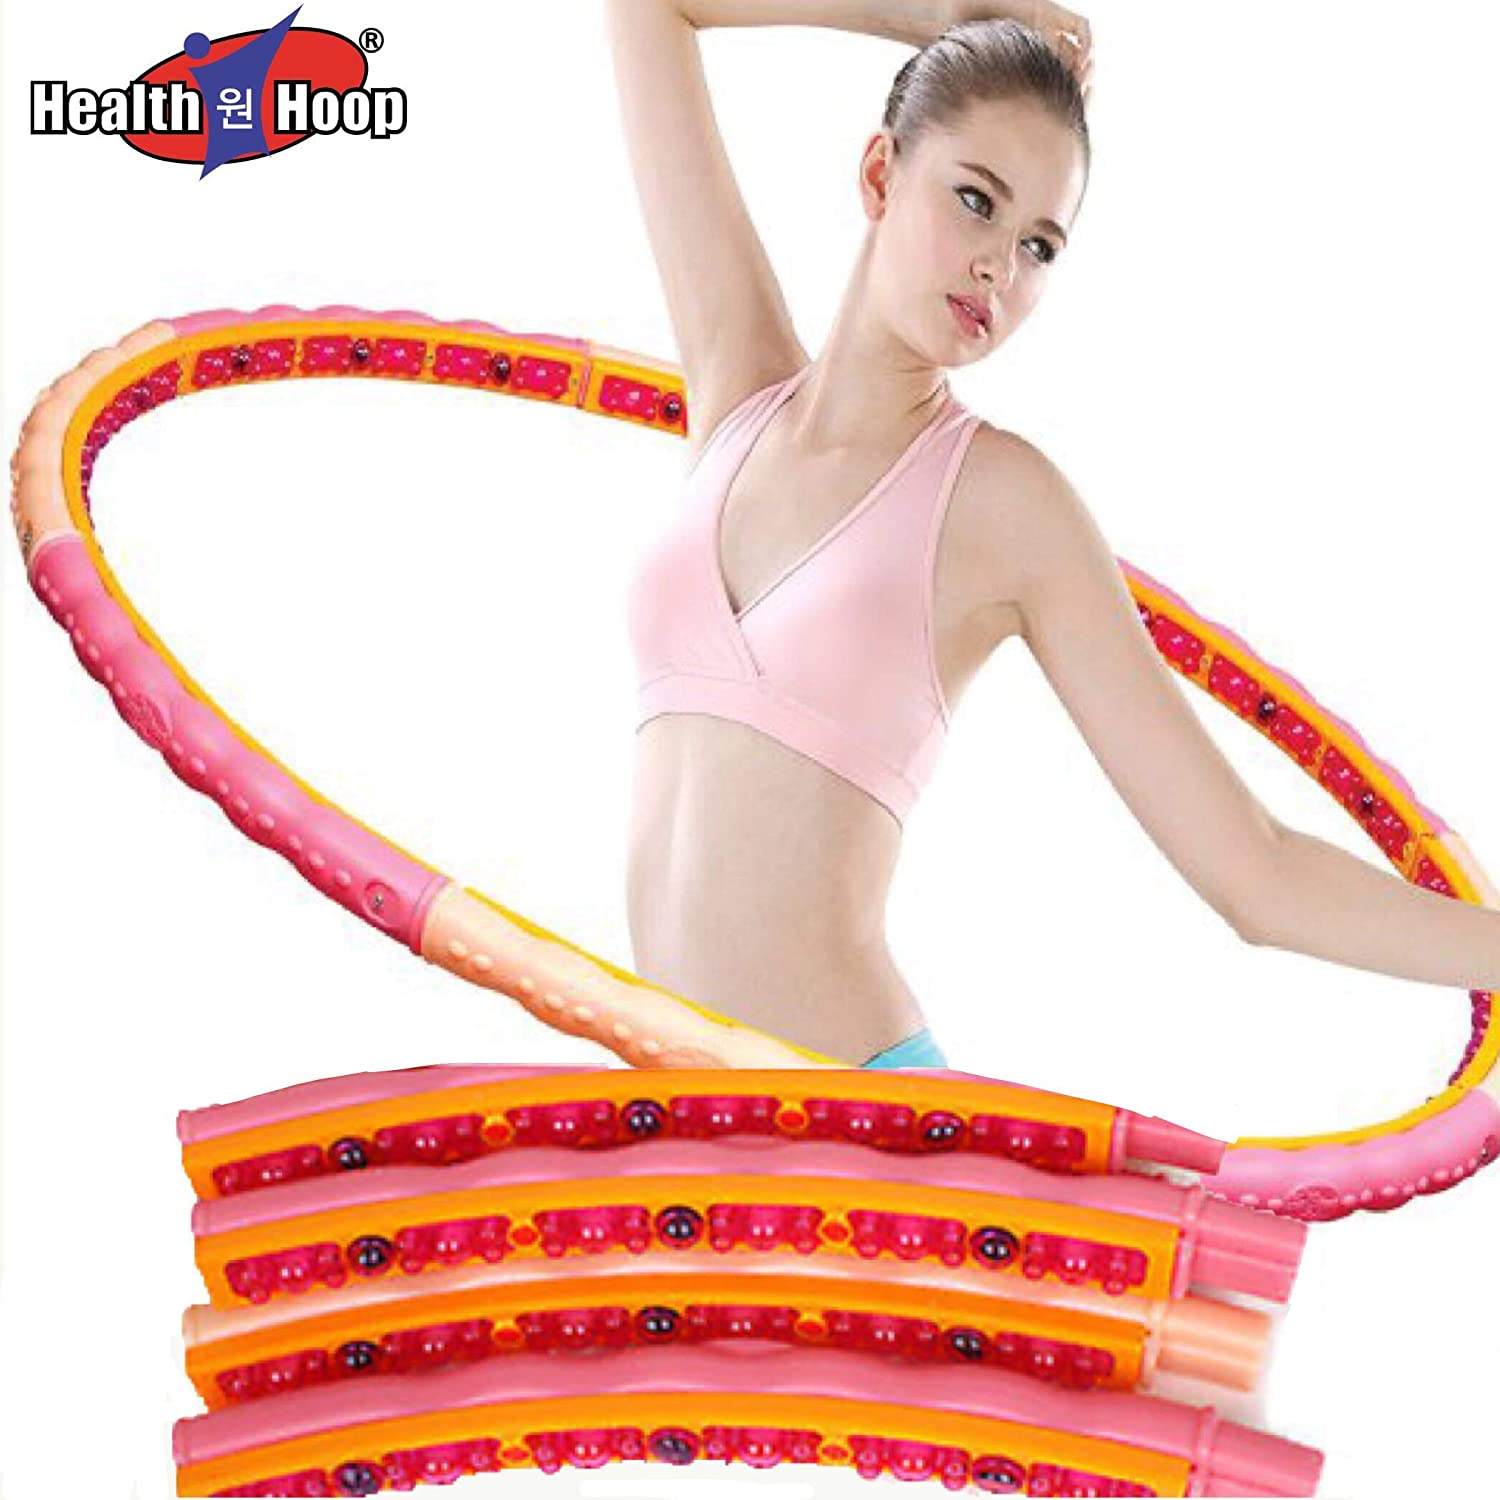 Health Hoola Hula Hoop Magnetic DynamicWeighted Diet Fitness2.5kg5.5lb Exercise